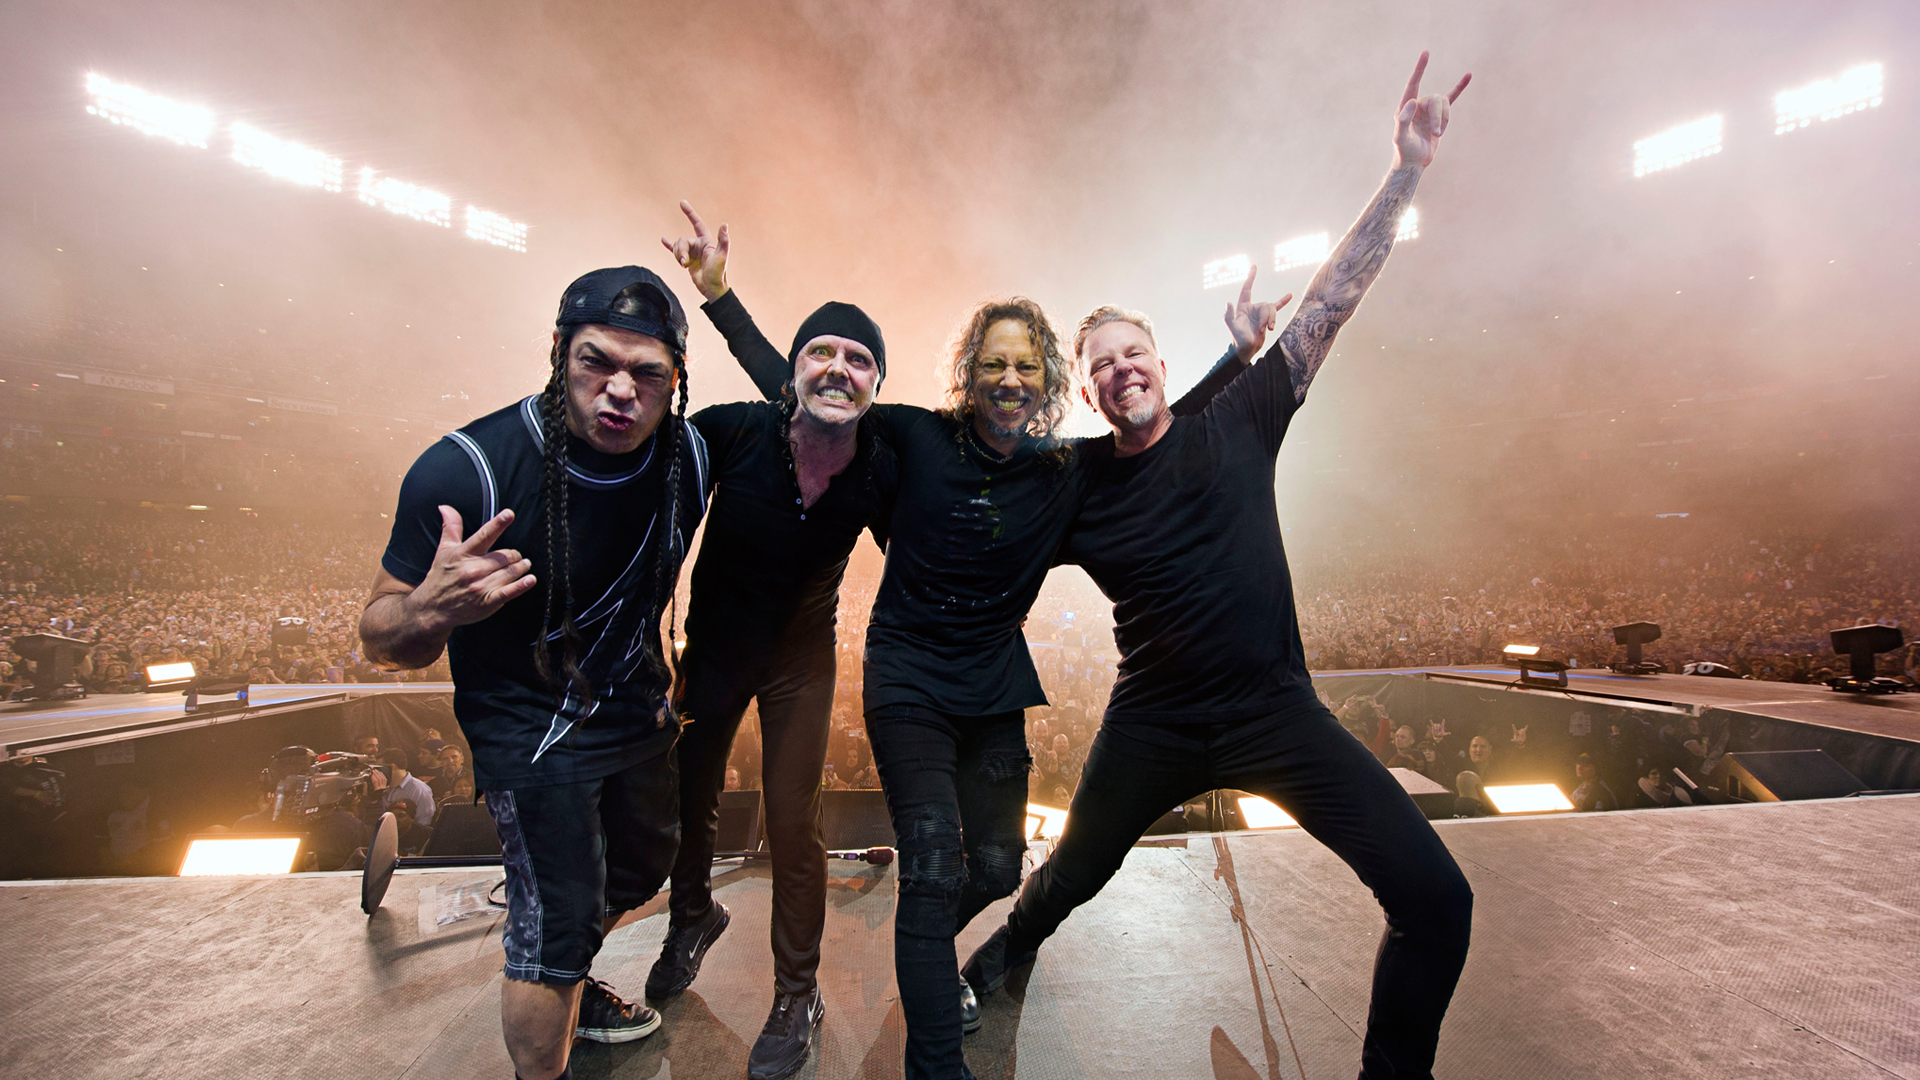 Metallica are back and 'Hardwired... To Self-Destruct